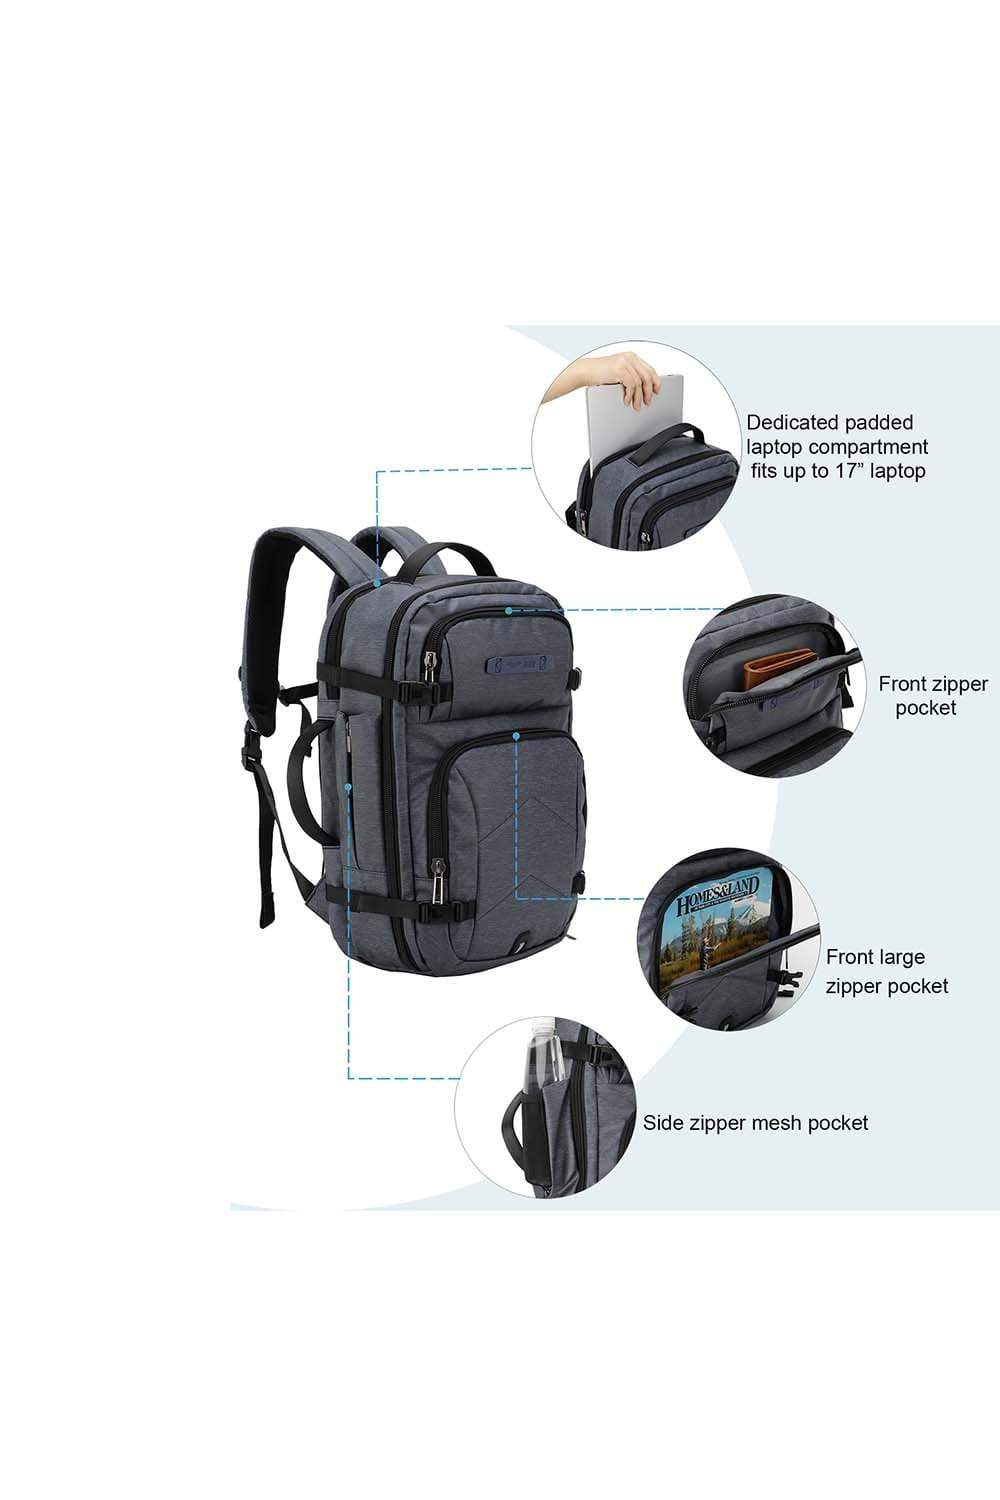 details of the backpack